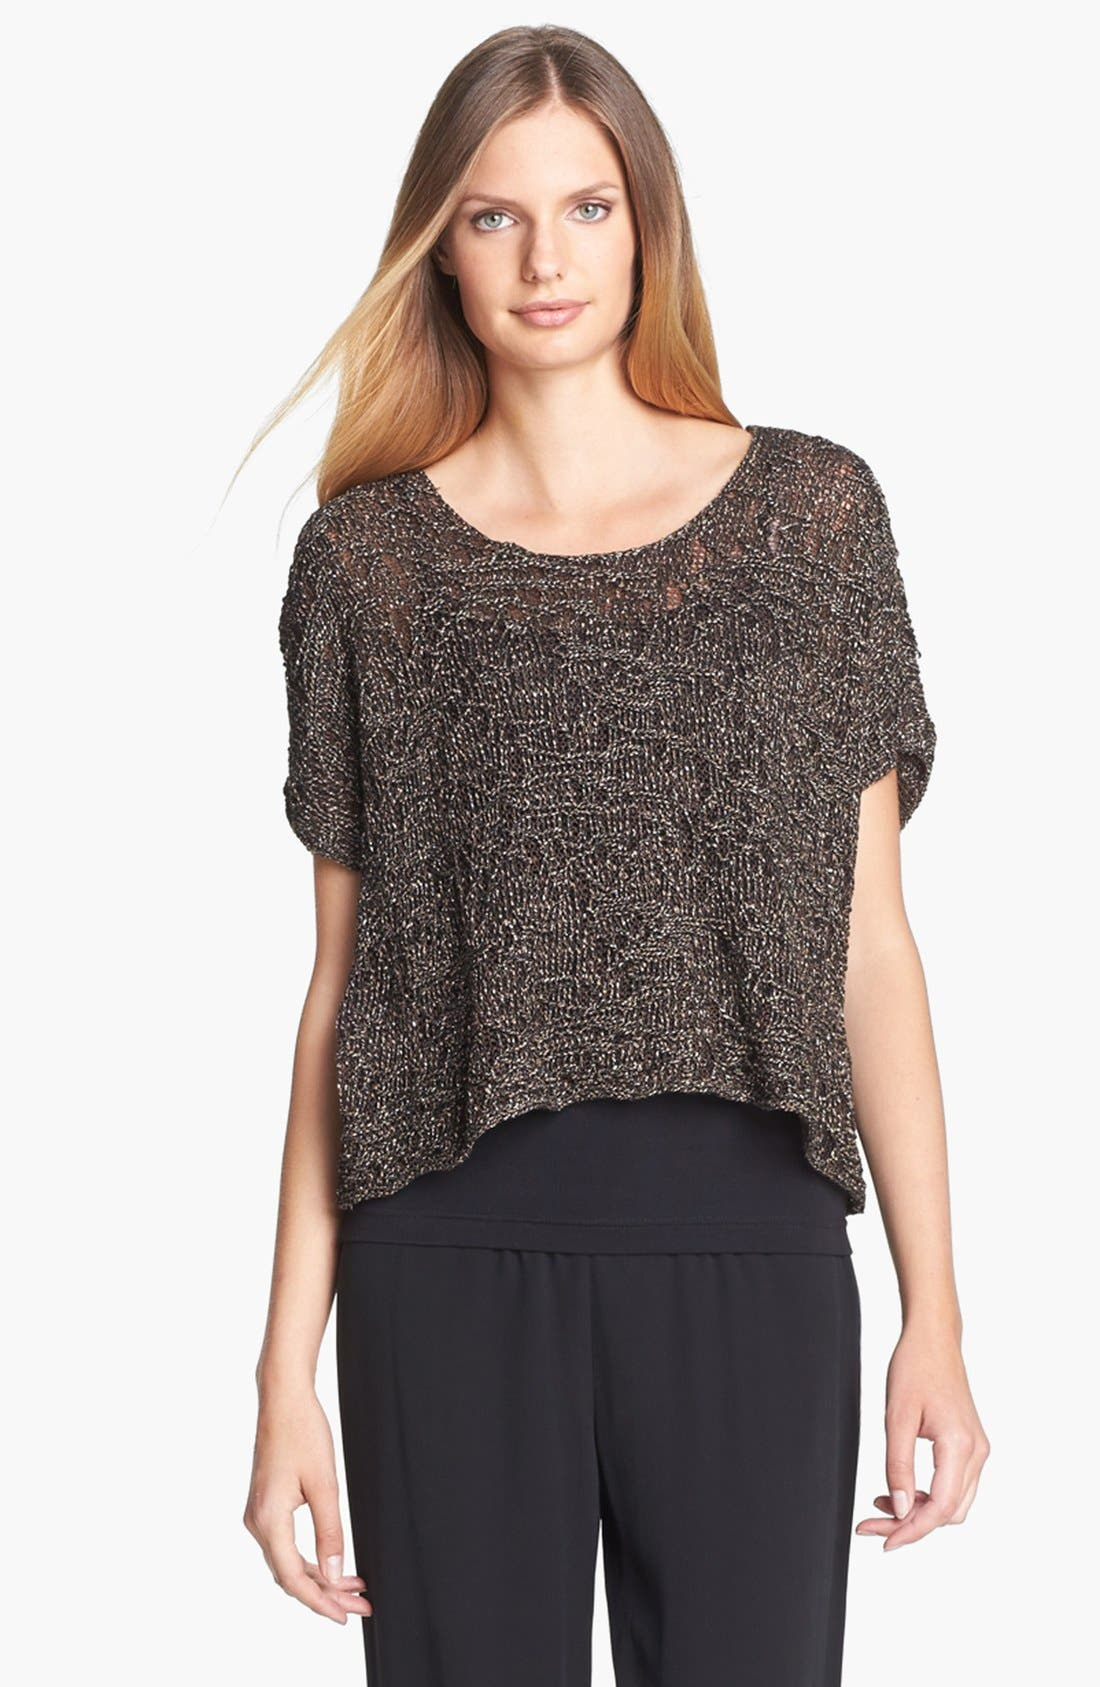 Alternate Image 1 Selected - Eileen Fisher Sparkle Jacquard Top